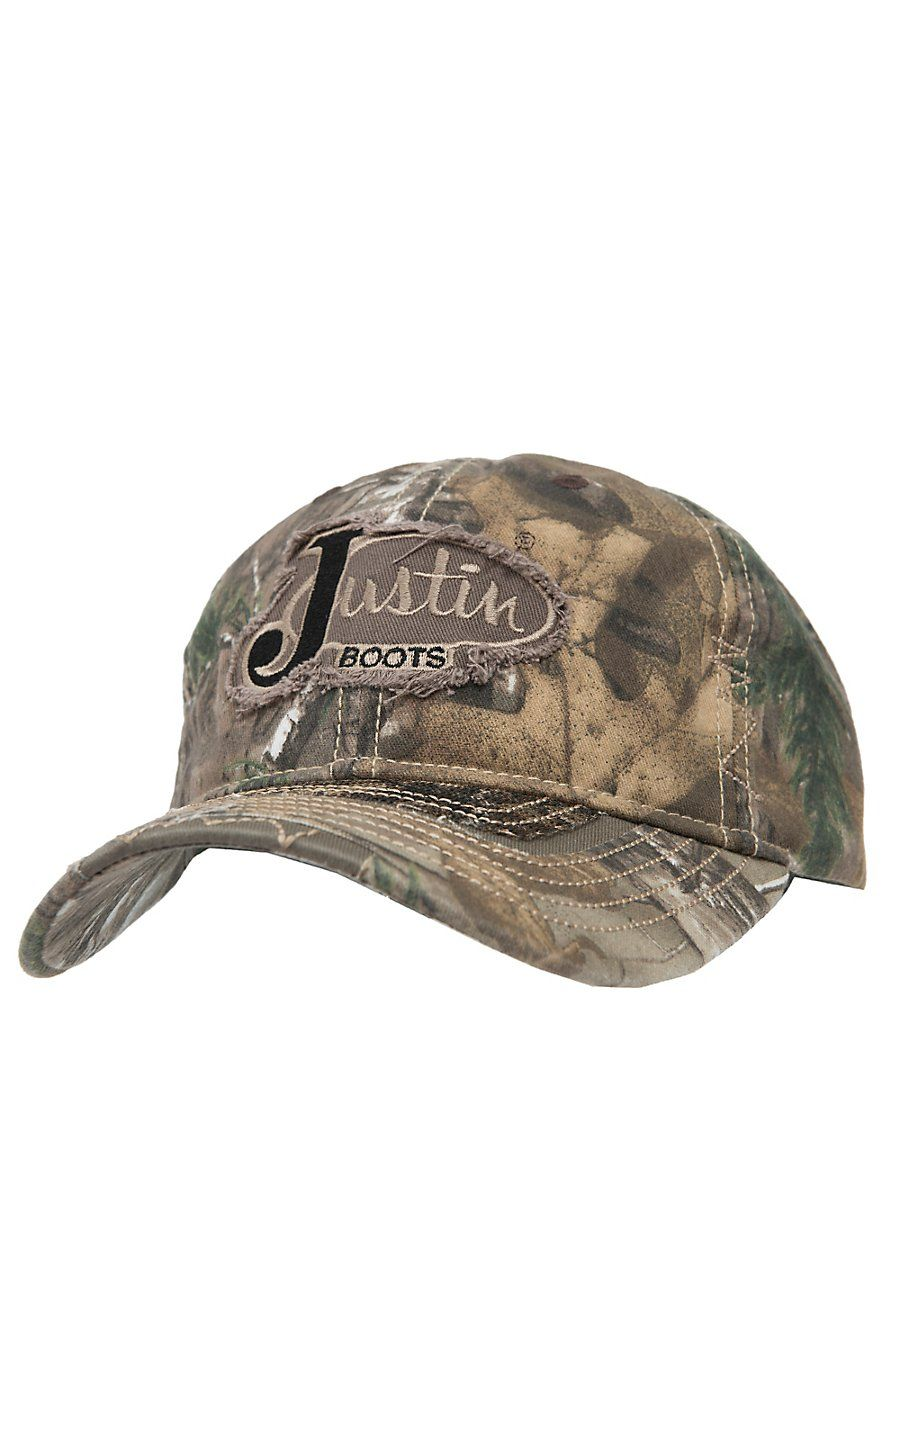 Justin Boots® Realtree Camo with Frayed Logo   Mesh Back Cap 067578e1304c